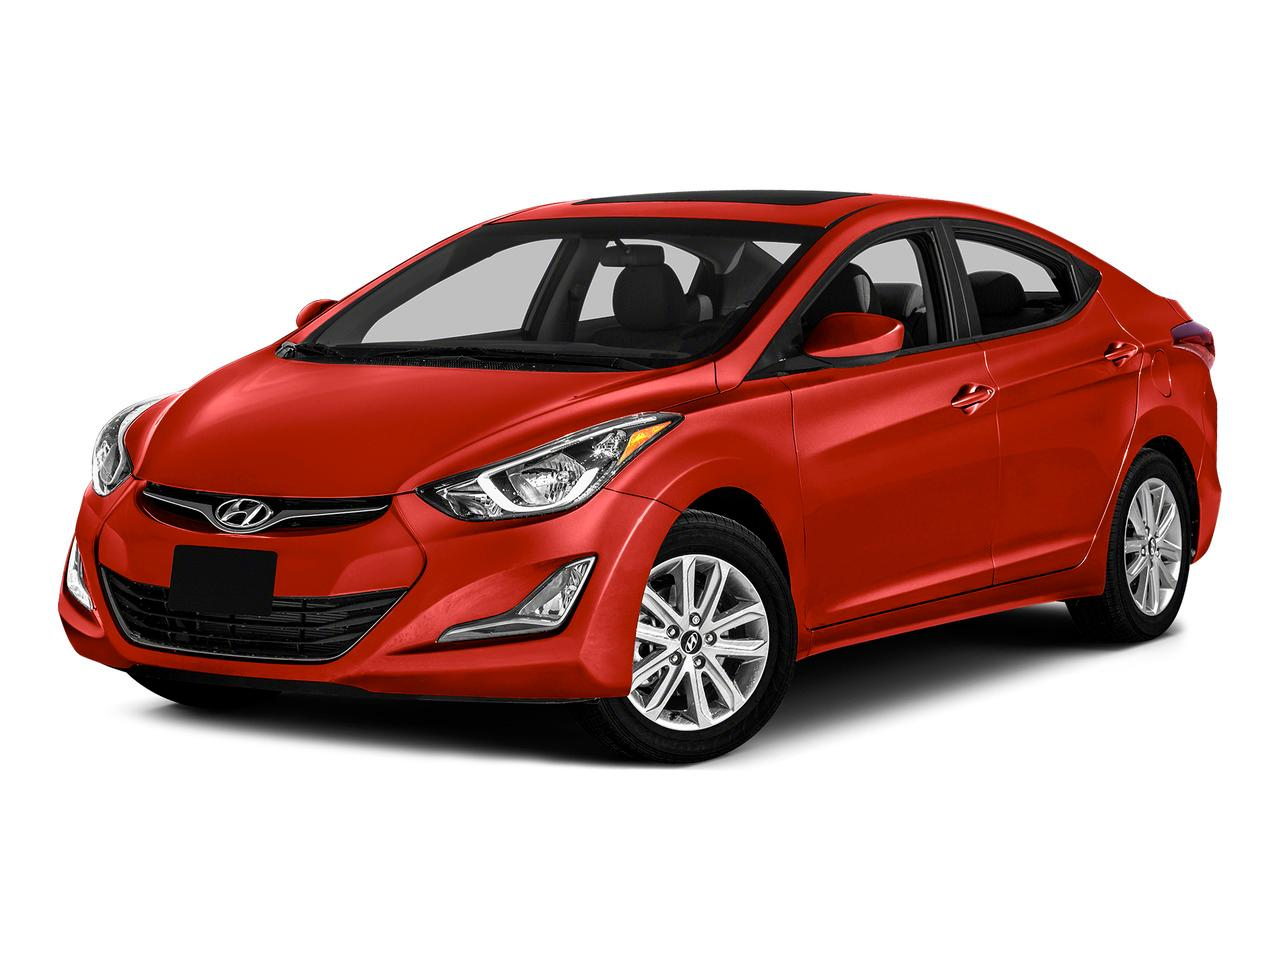 2016 Hyundai Elantra Vehicle Photo in Owensboro, KY 42303